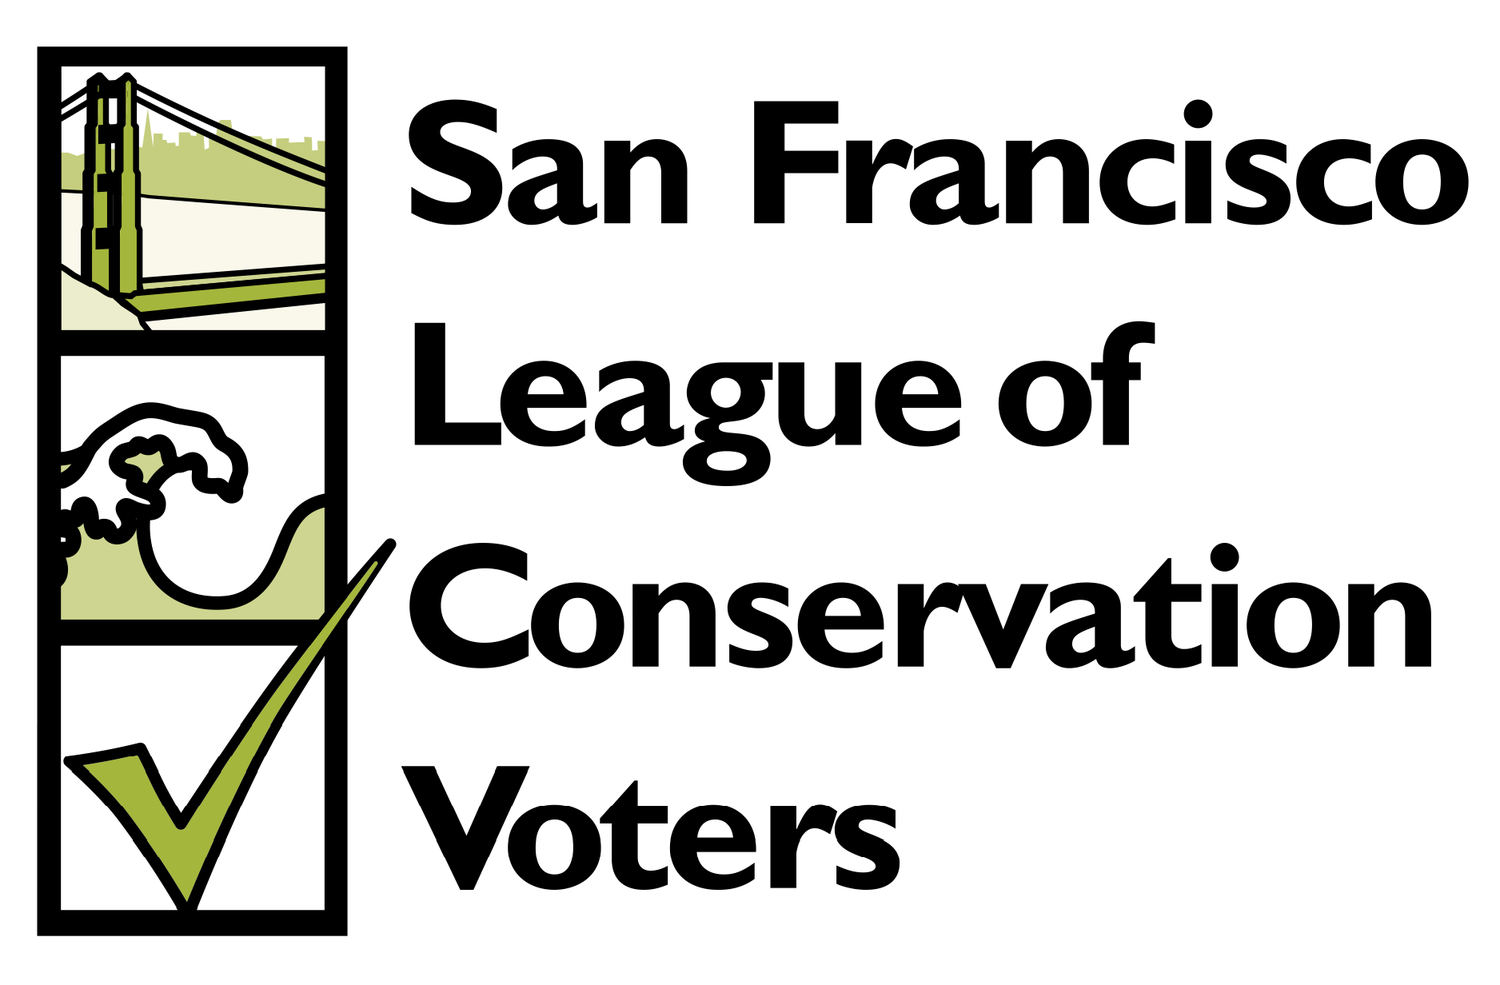 San Francisco League of Conservation Voters